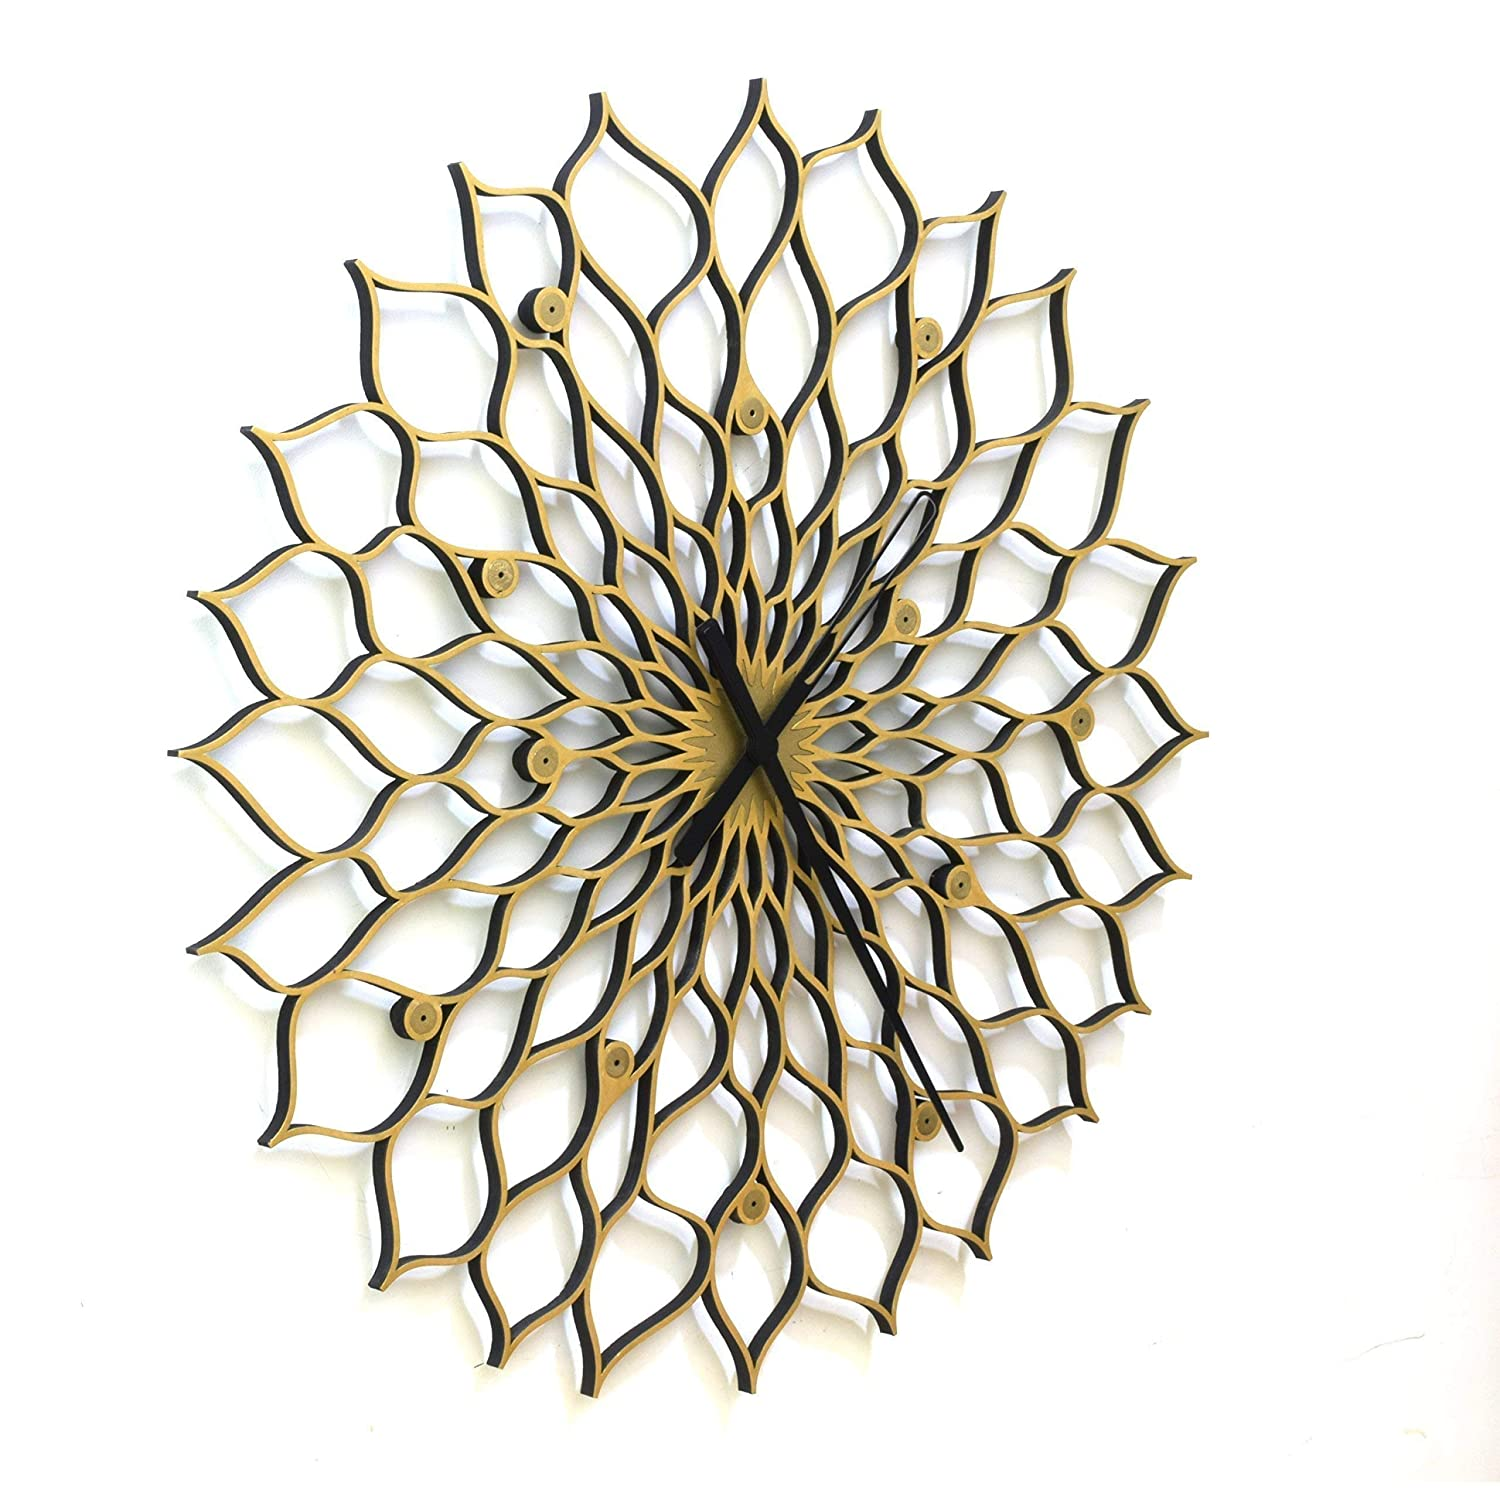 3 Extra Large Size Handmade Organic Wall Clock with Golden Shades by ardeola Gigantic Sunflower Clock